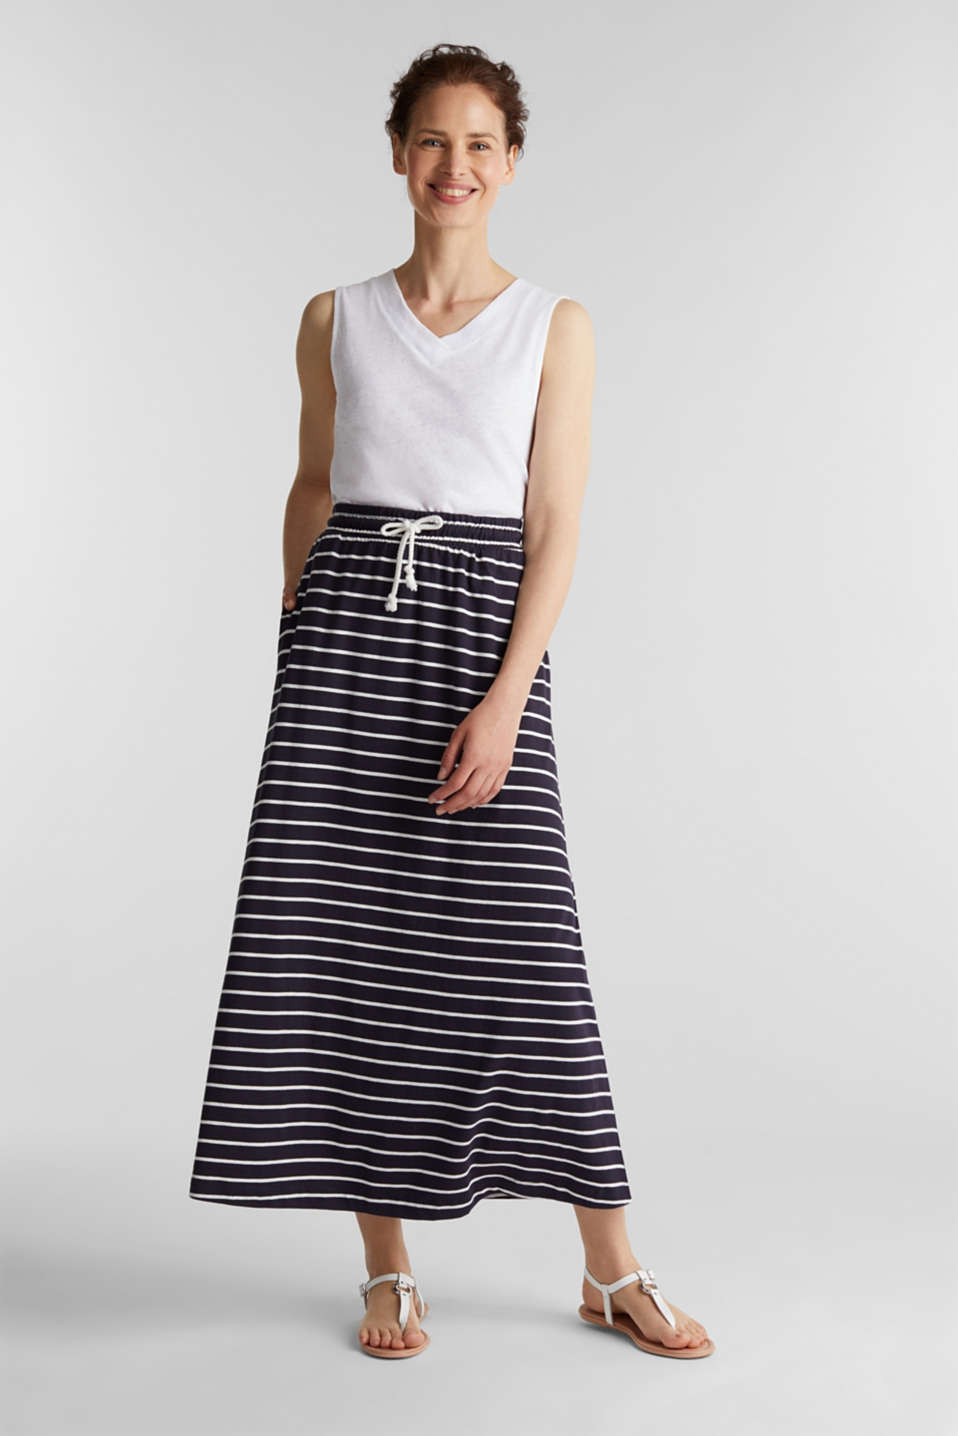 Esprit - Gonna maxi in jersey, 100% cotone biologico